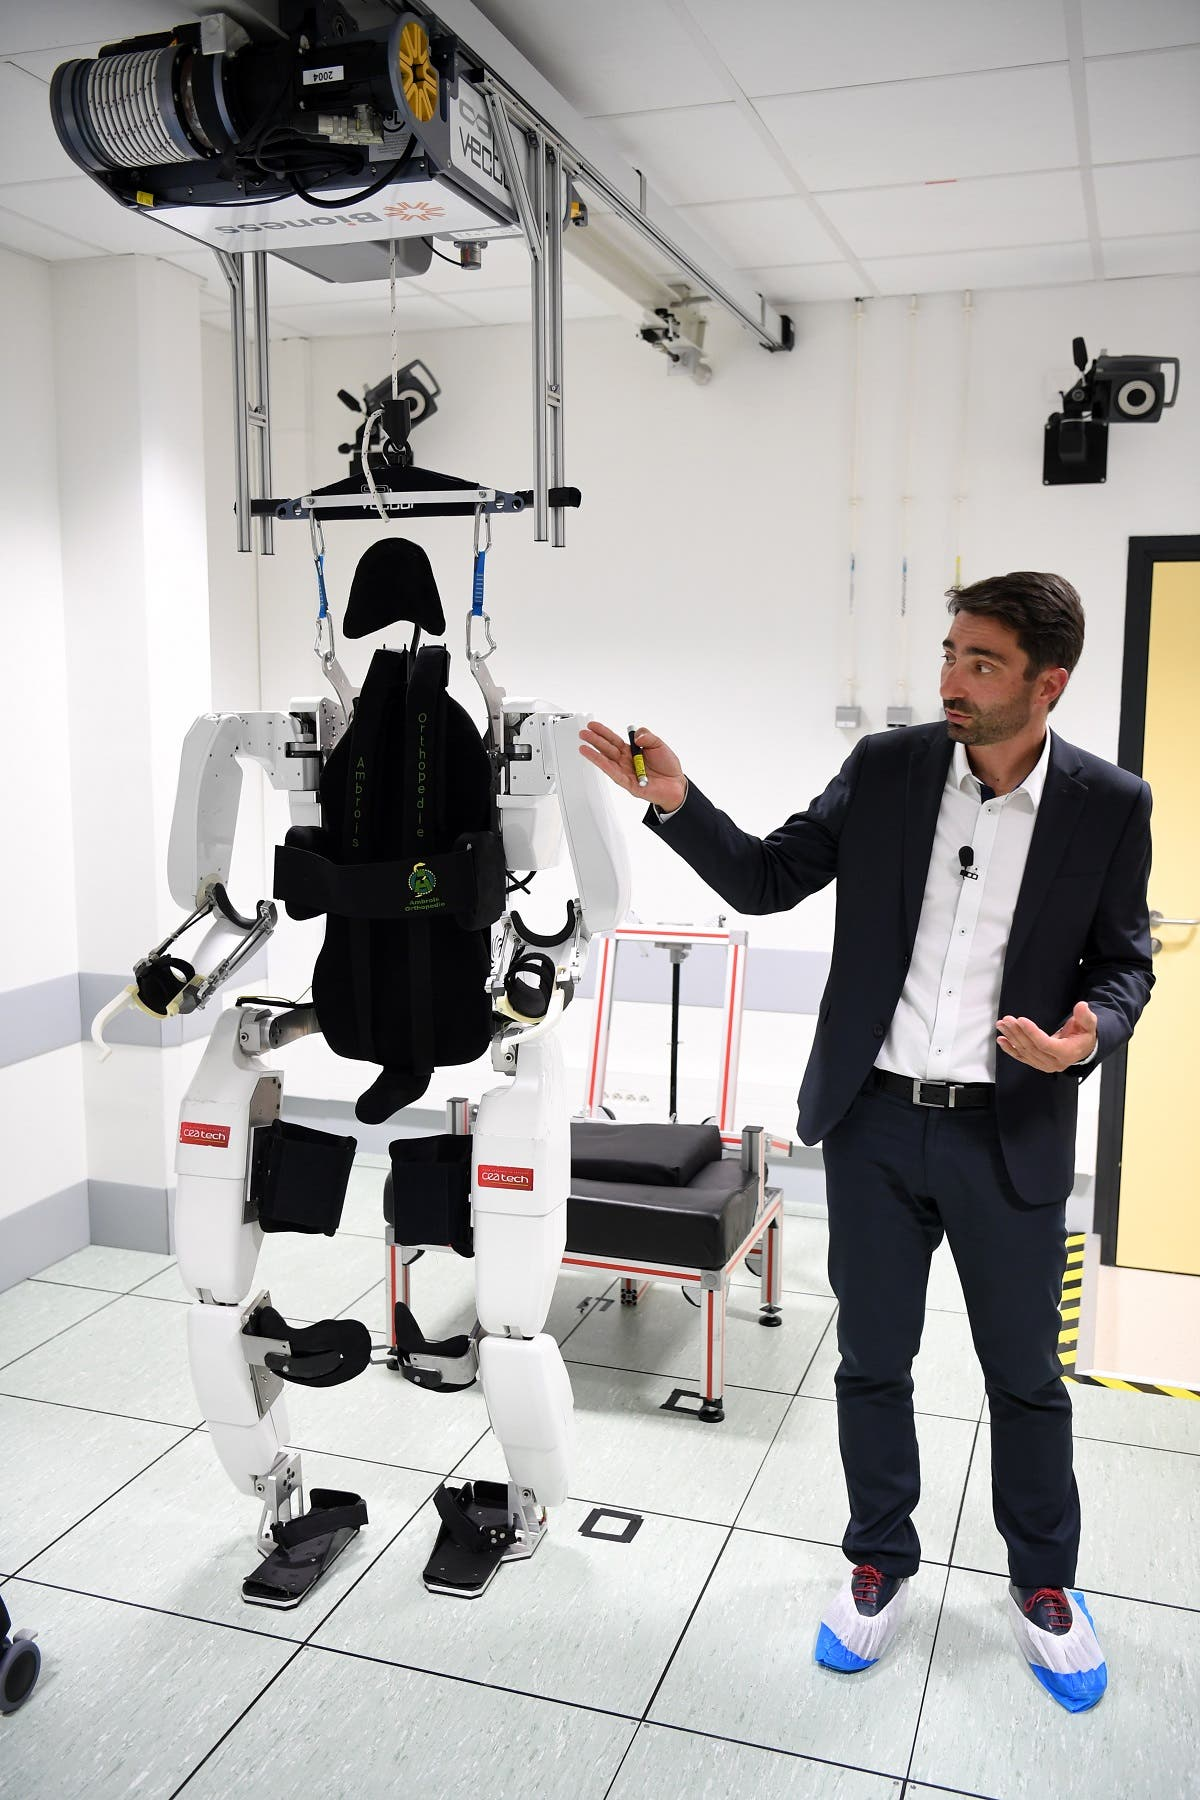 French project manager Gullaume Charvet presents the brain-controlled exoskeleton that allowed a disabled patient to walk again at the biomedical research center Clinatec in Grenoble on October 7, 2019. (AFP)